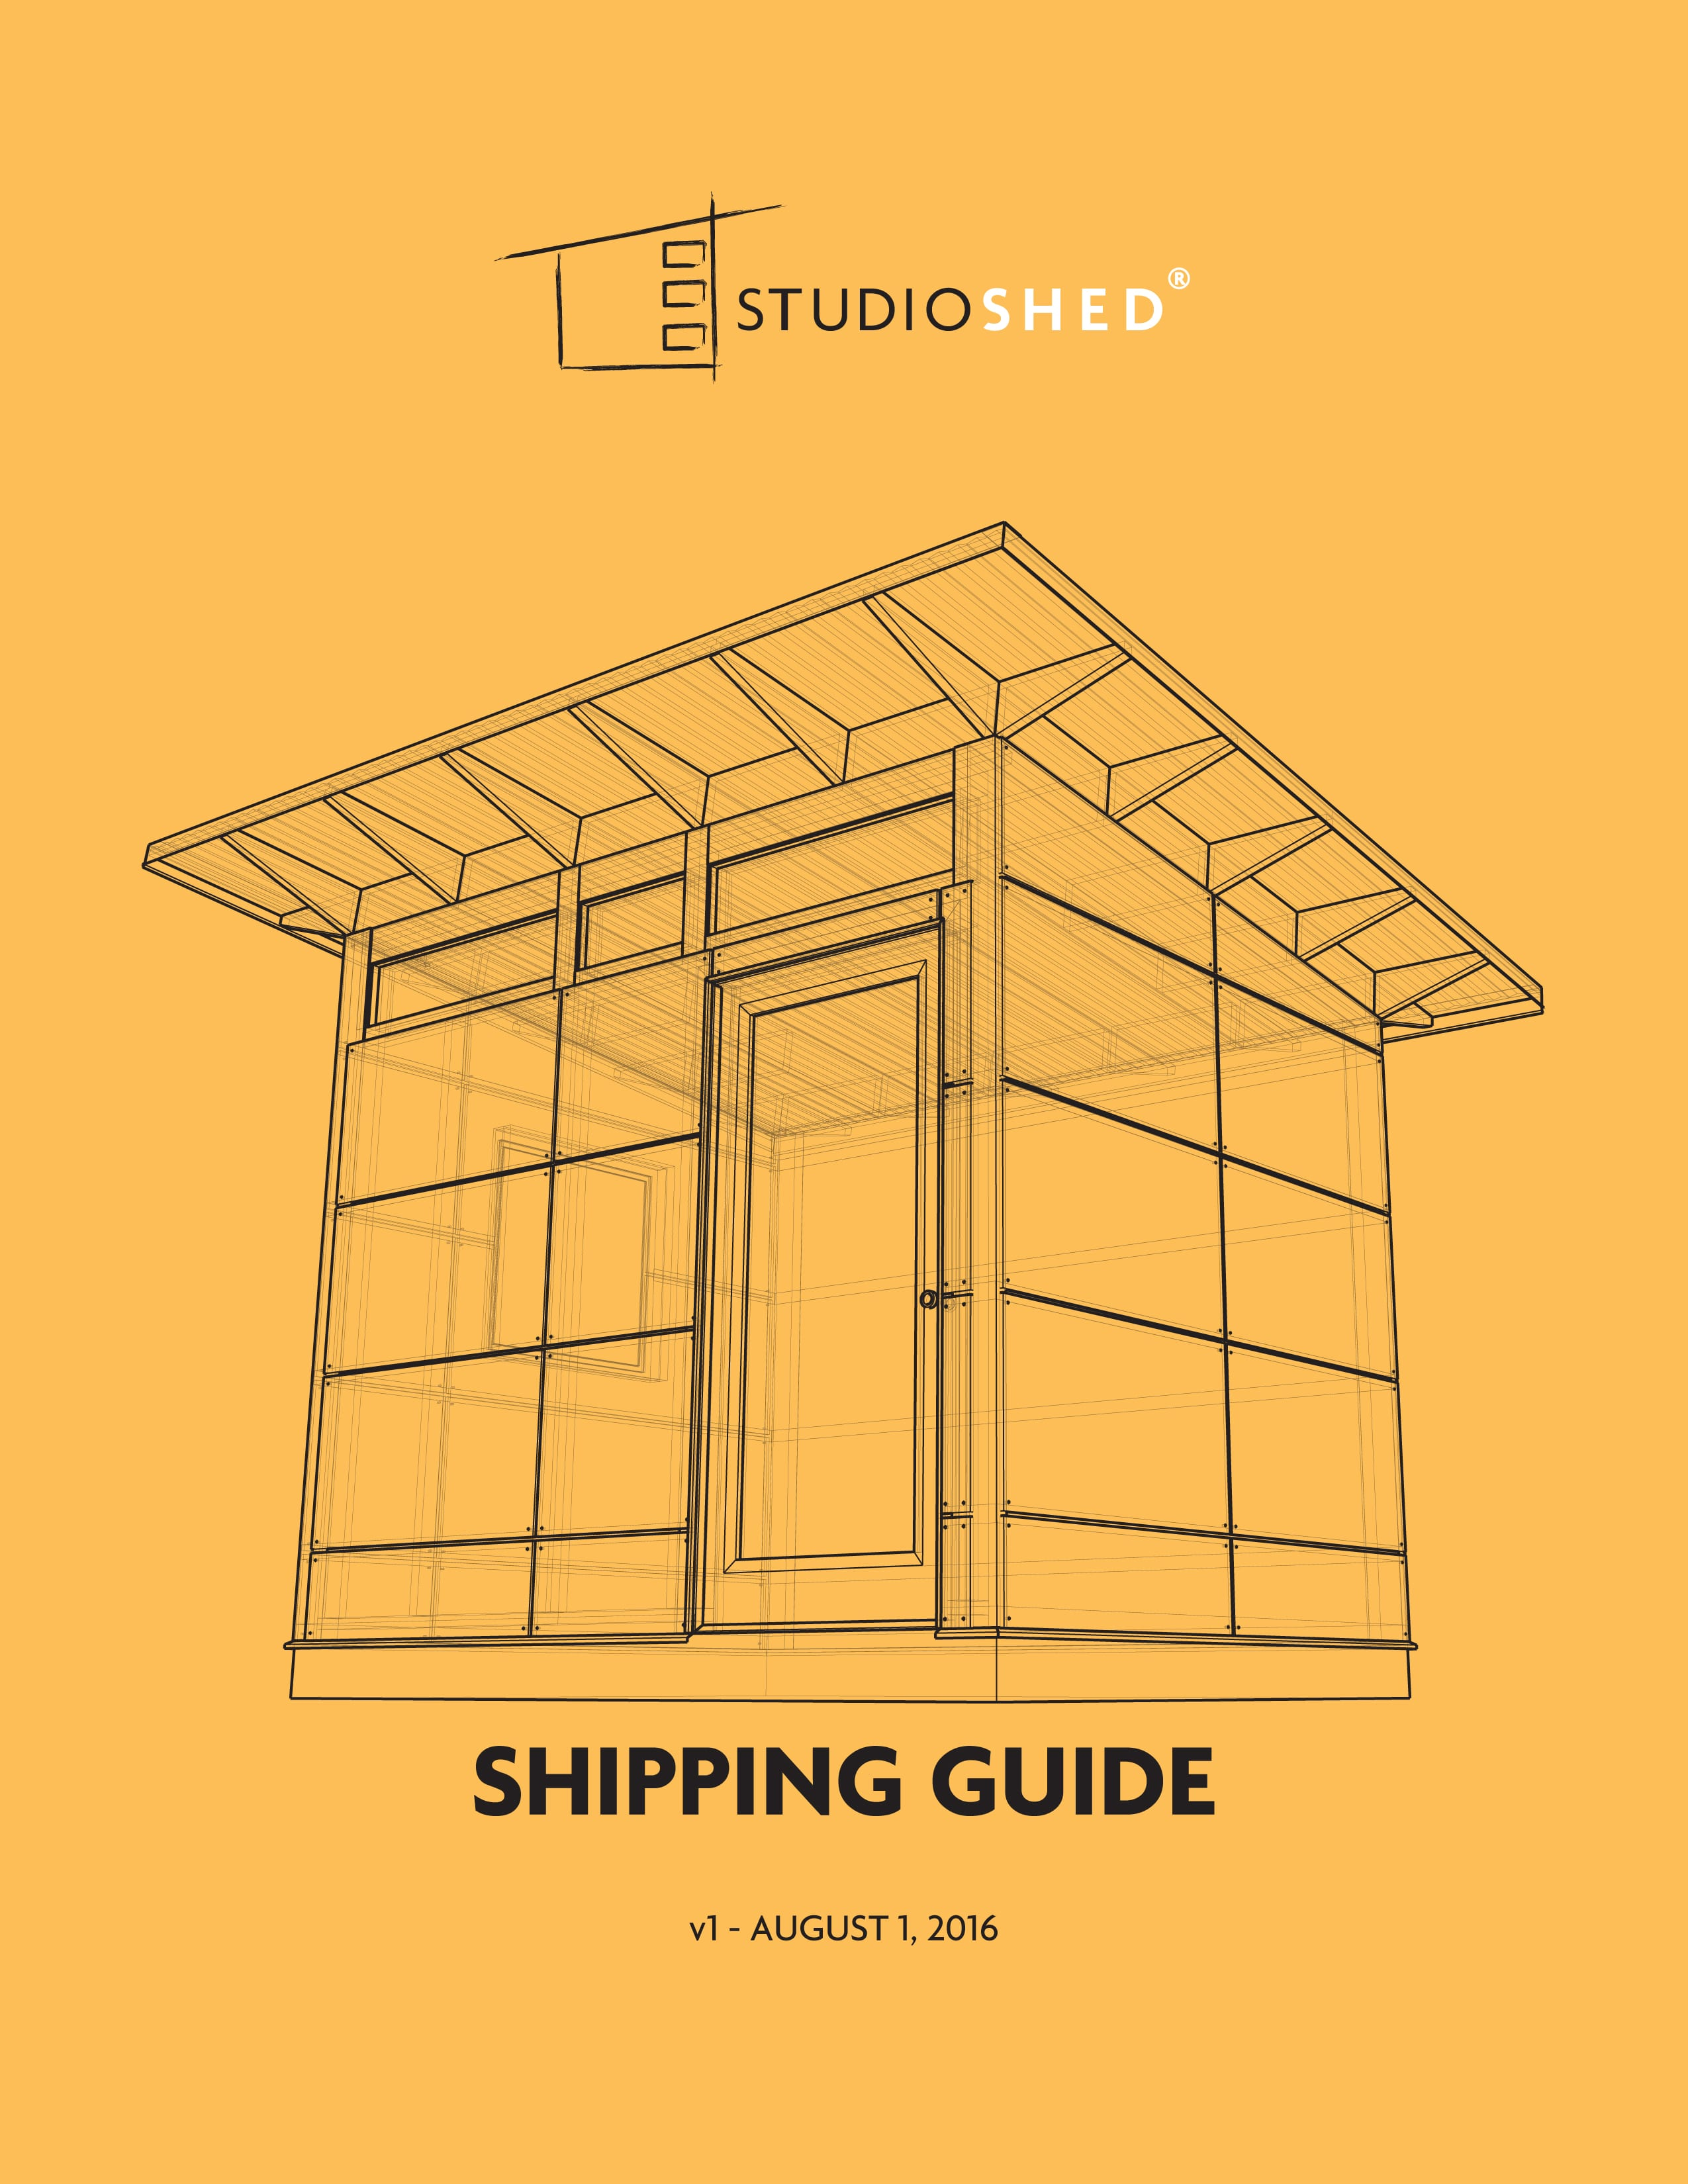 Studio Shed Shipping Guide